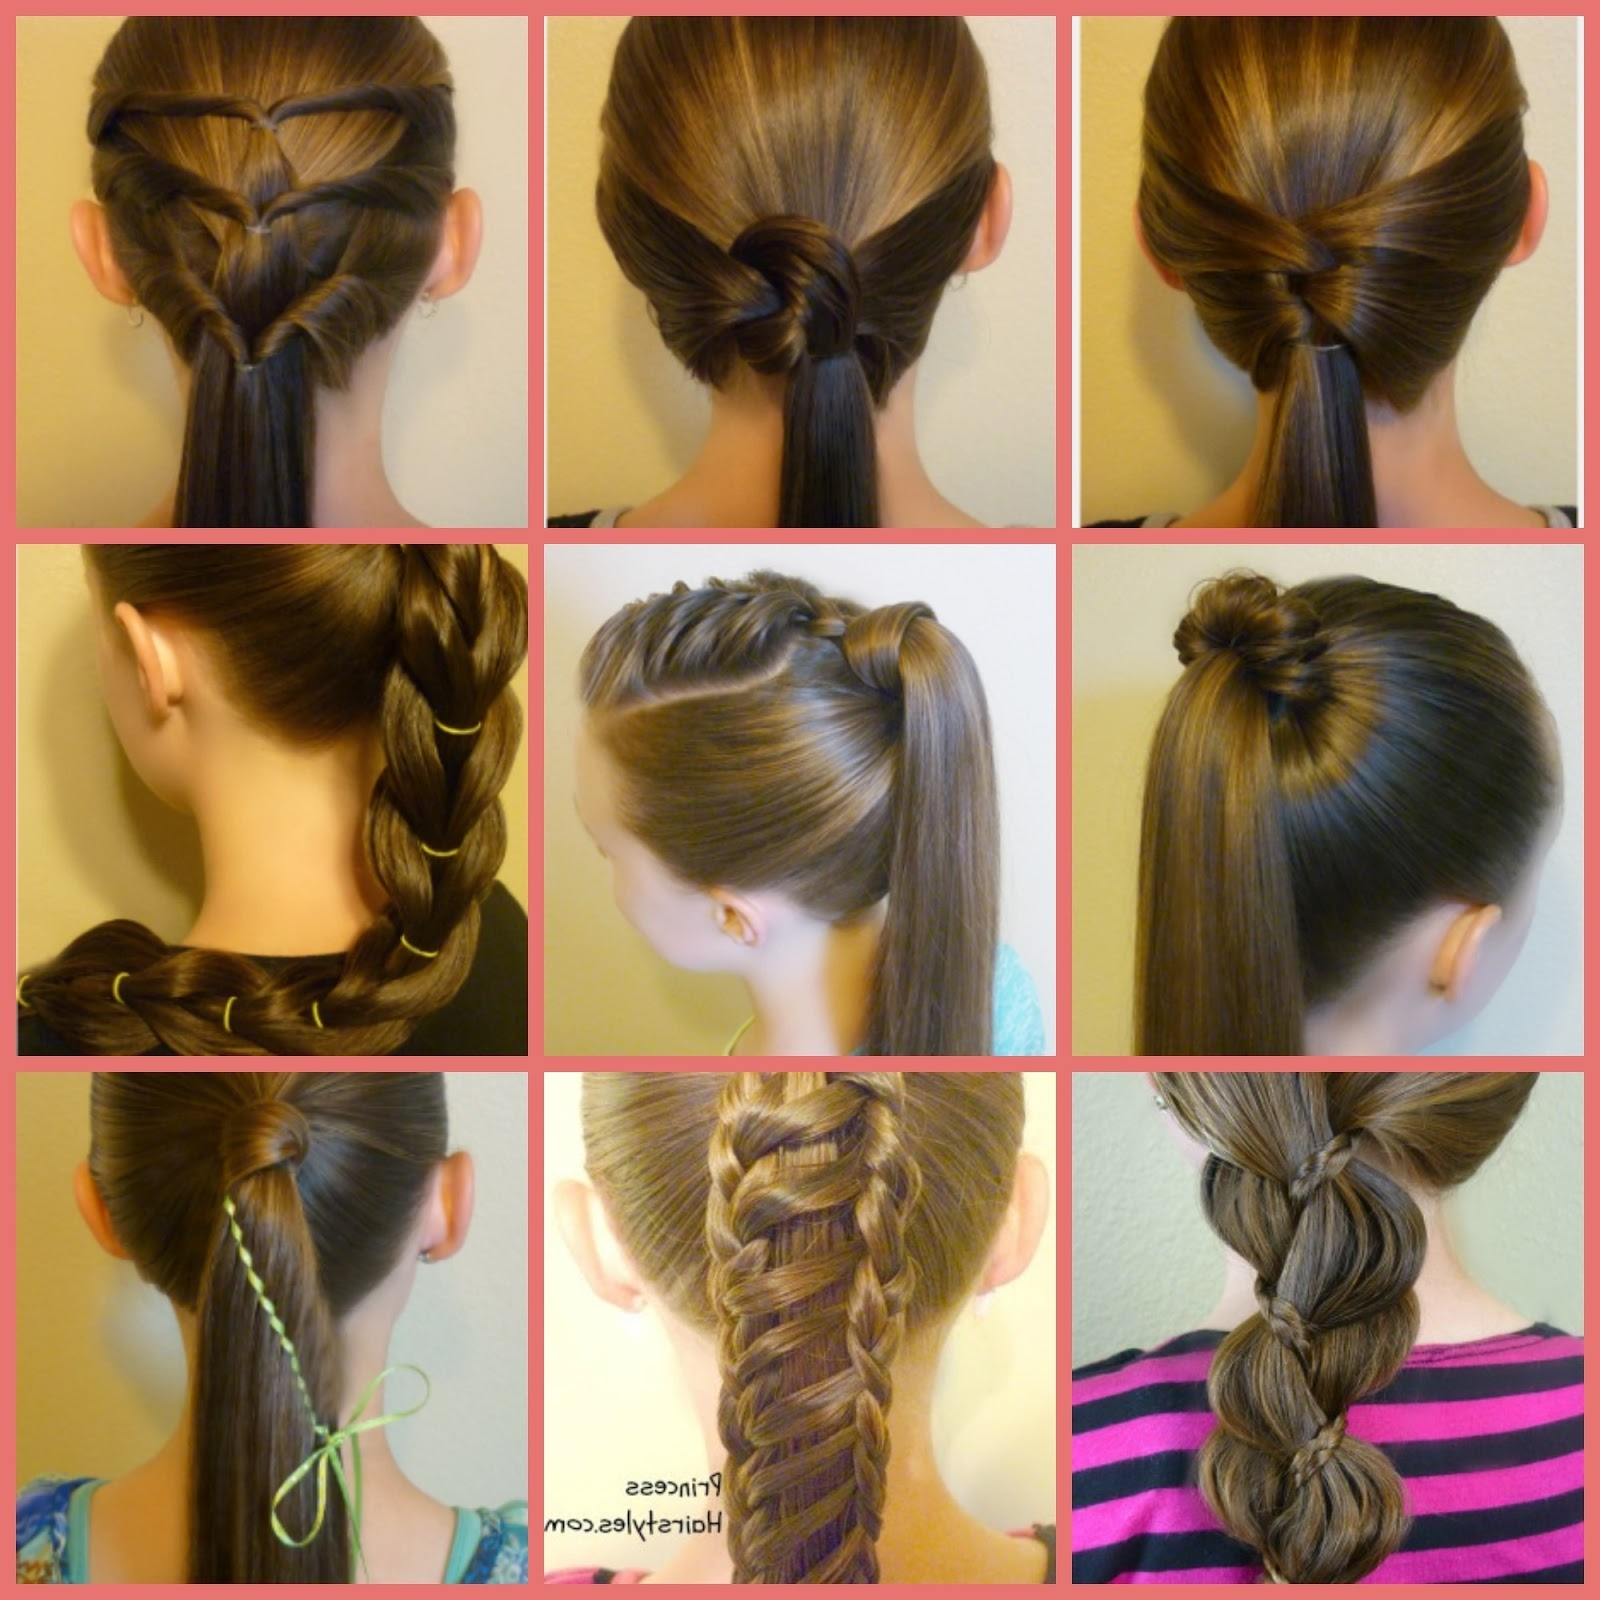 10 Easy Ponytail Hairstyles – Hairstyles For Girls – Princess Hairstyles For Current Princess Ponytail Hairstyles (View 1 of 20)